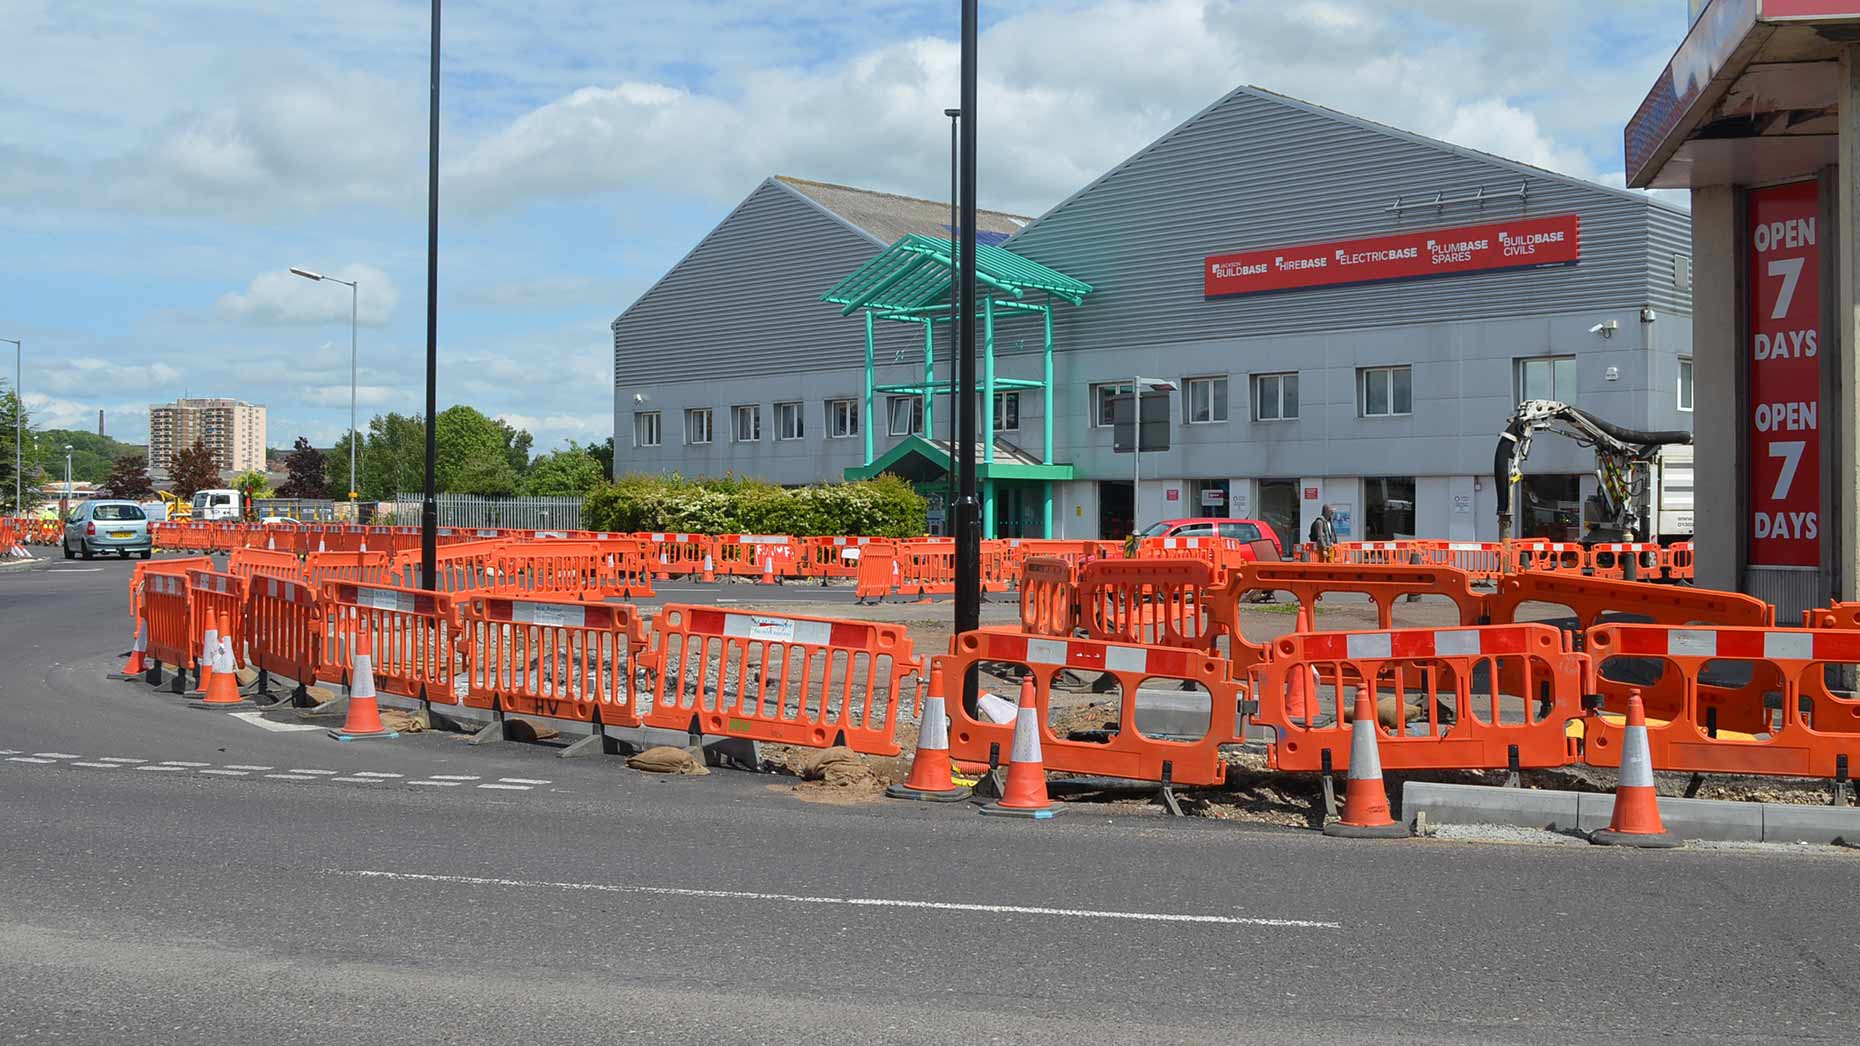 Work is still ongoing to complete the pedestrian improvements. Photo: Emily Norton for The Lincolnite